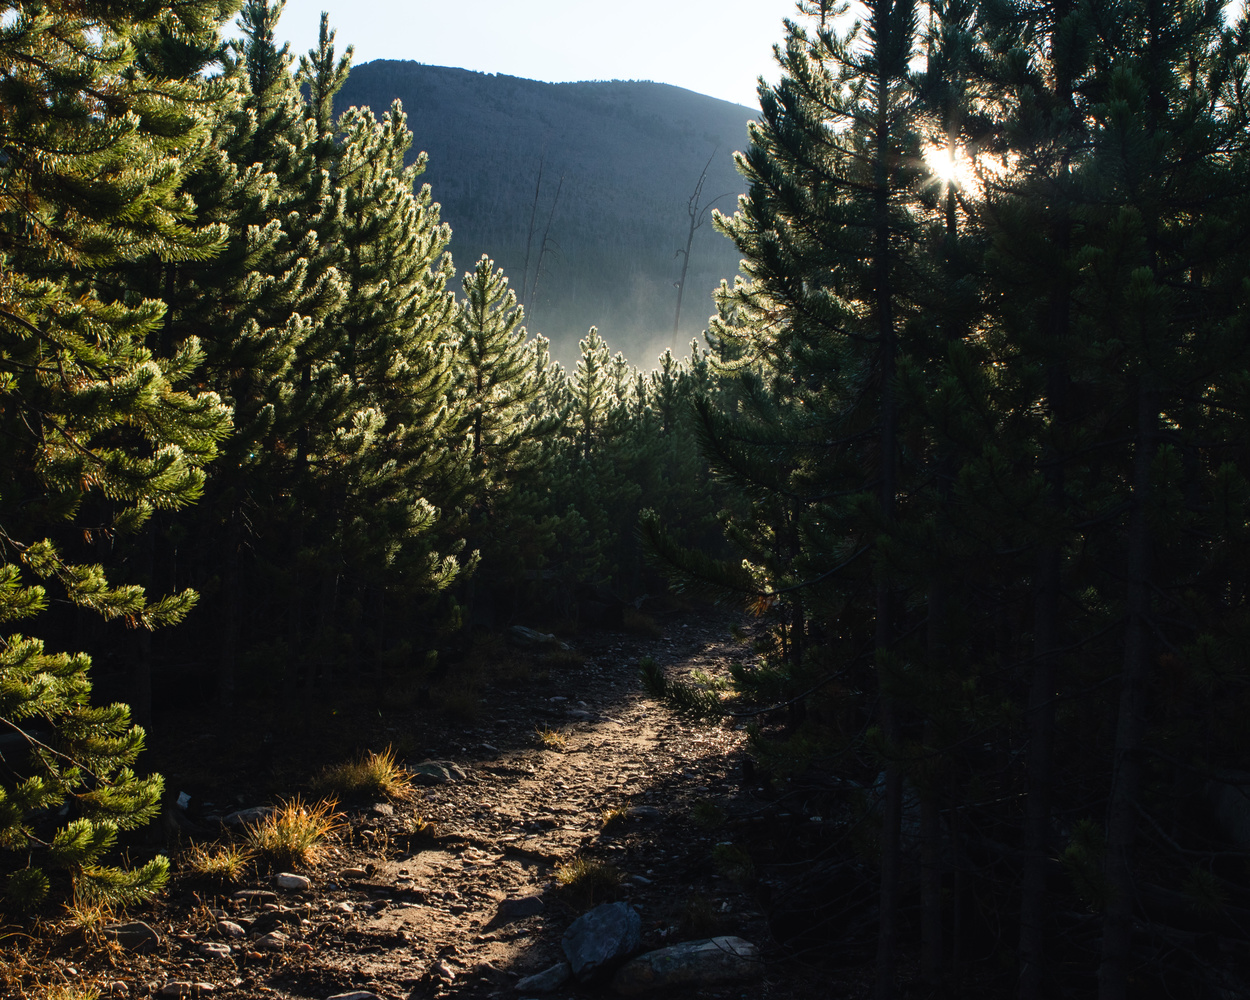 Sunrise on the Trail by Nick Cody